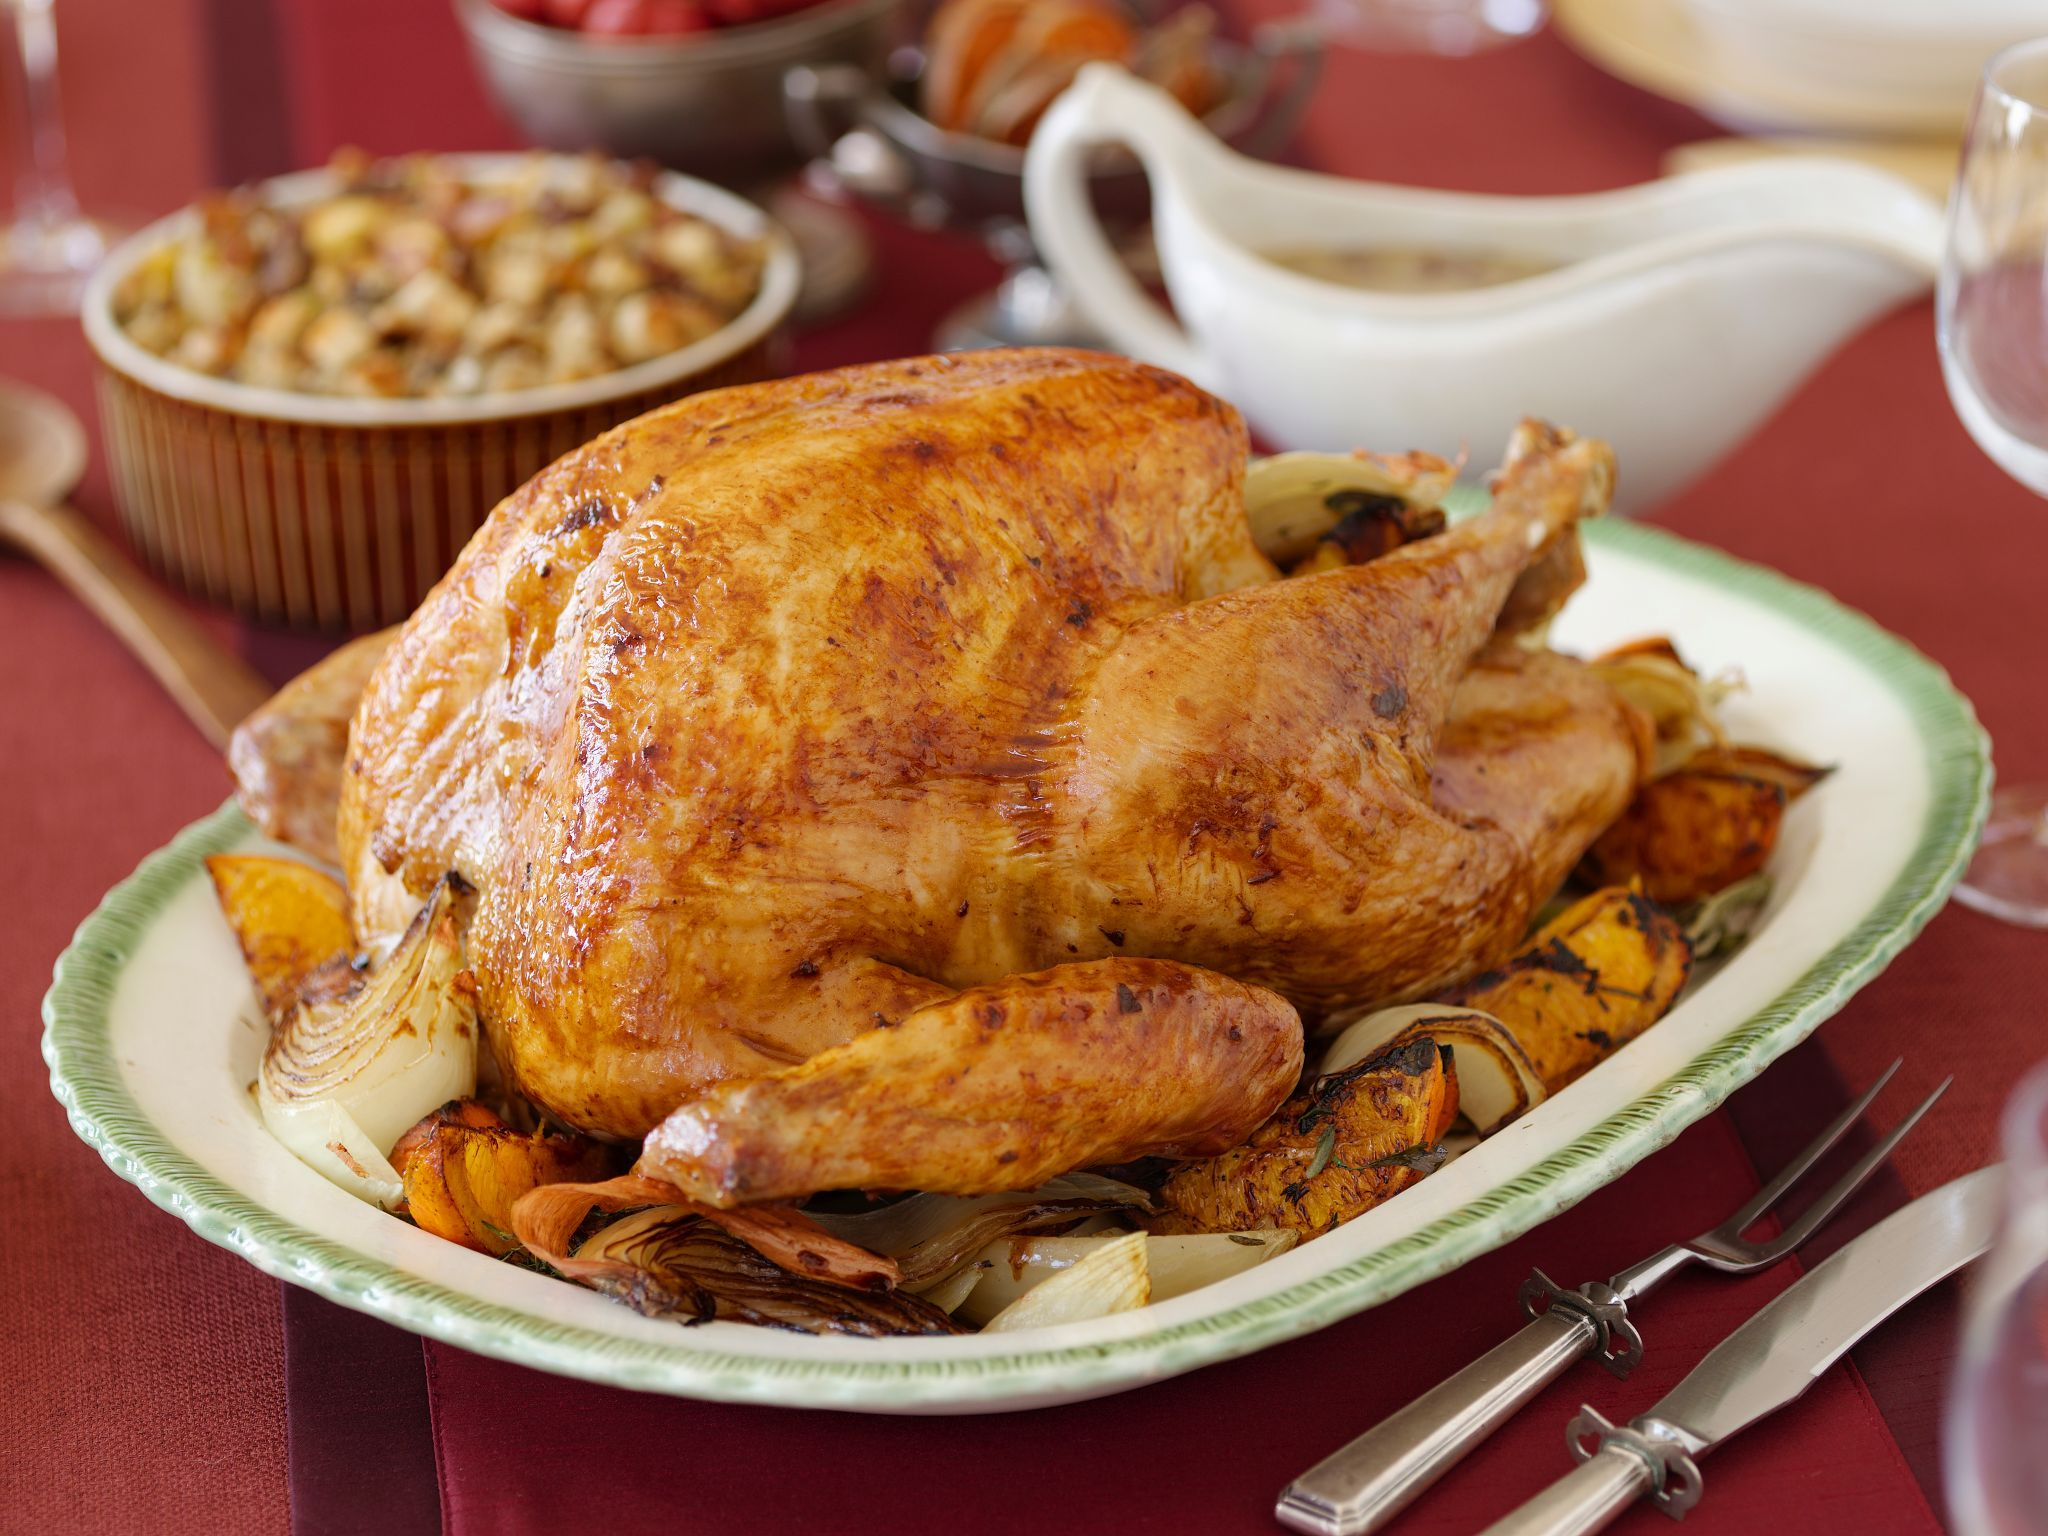 Top turkey tips herb roasted turkey turkey recipes and roasted get expert turkey tips including thawing cooking trussing and roasting your bird forumfinder Choice Image